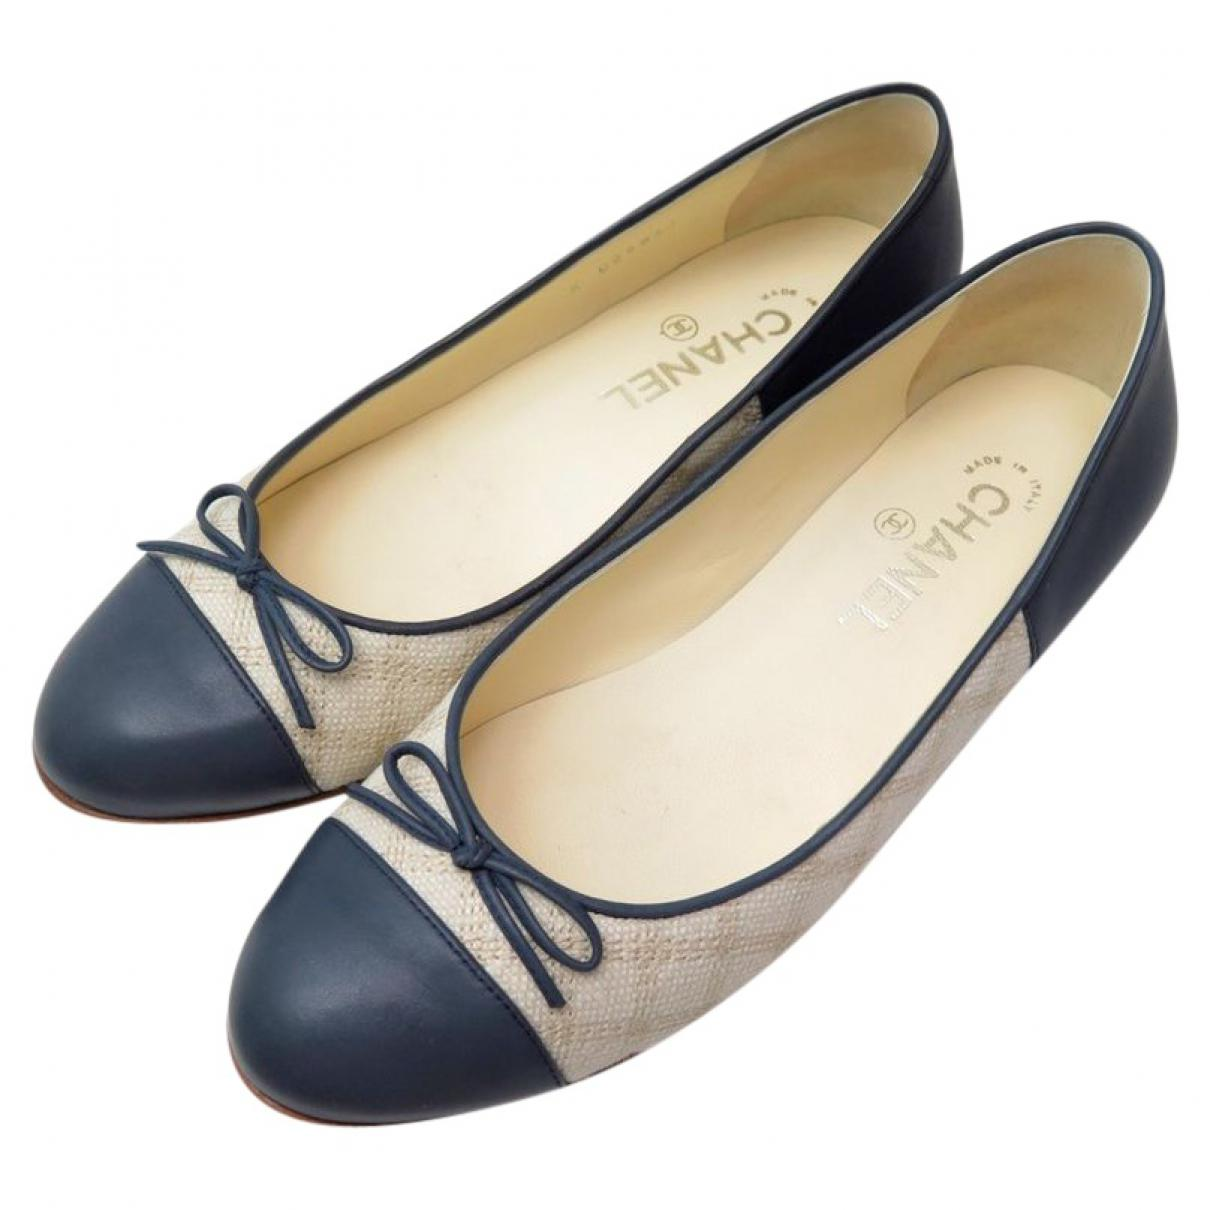 Pre-owned - Cloth ballet flats Chanel eXSCDJGzy